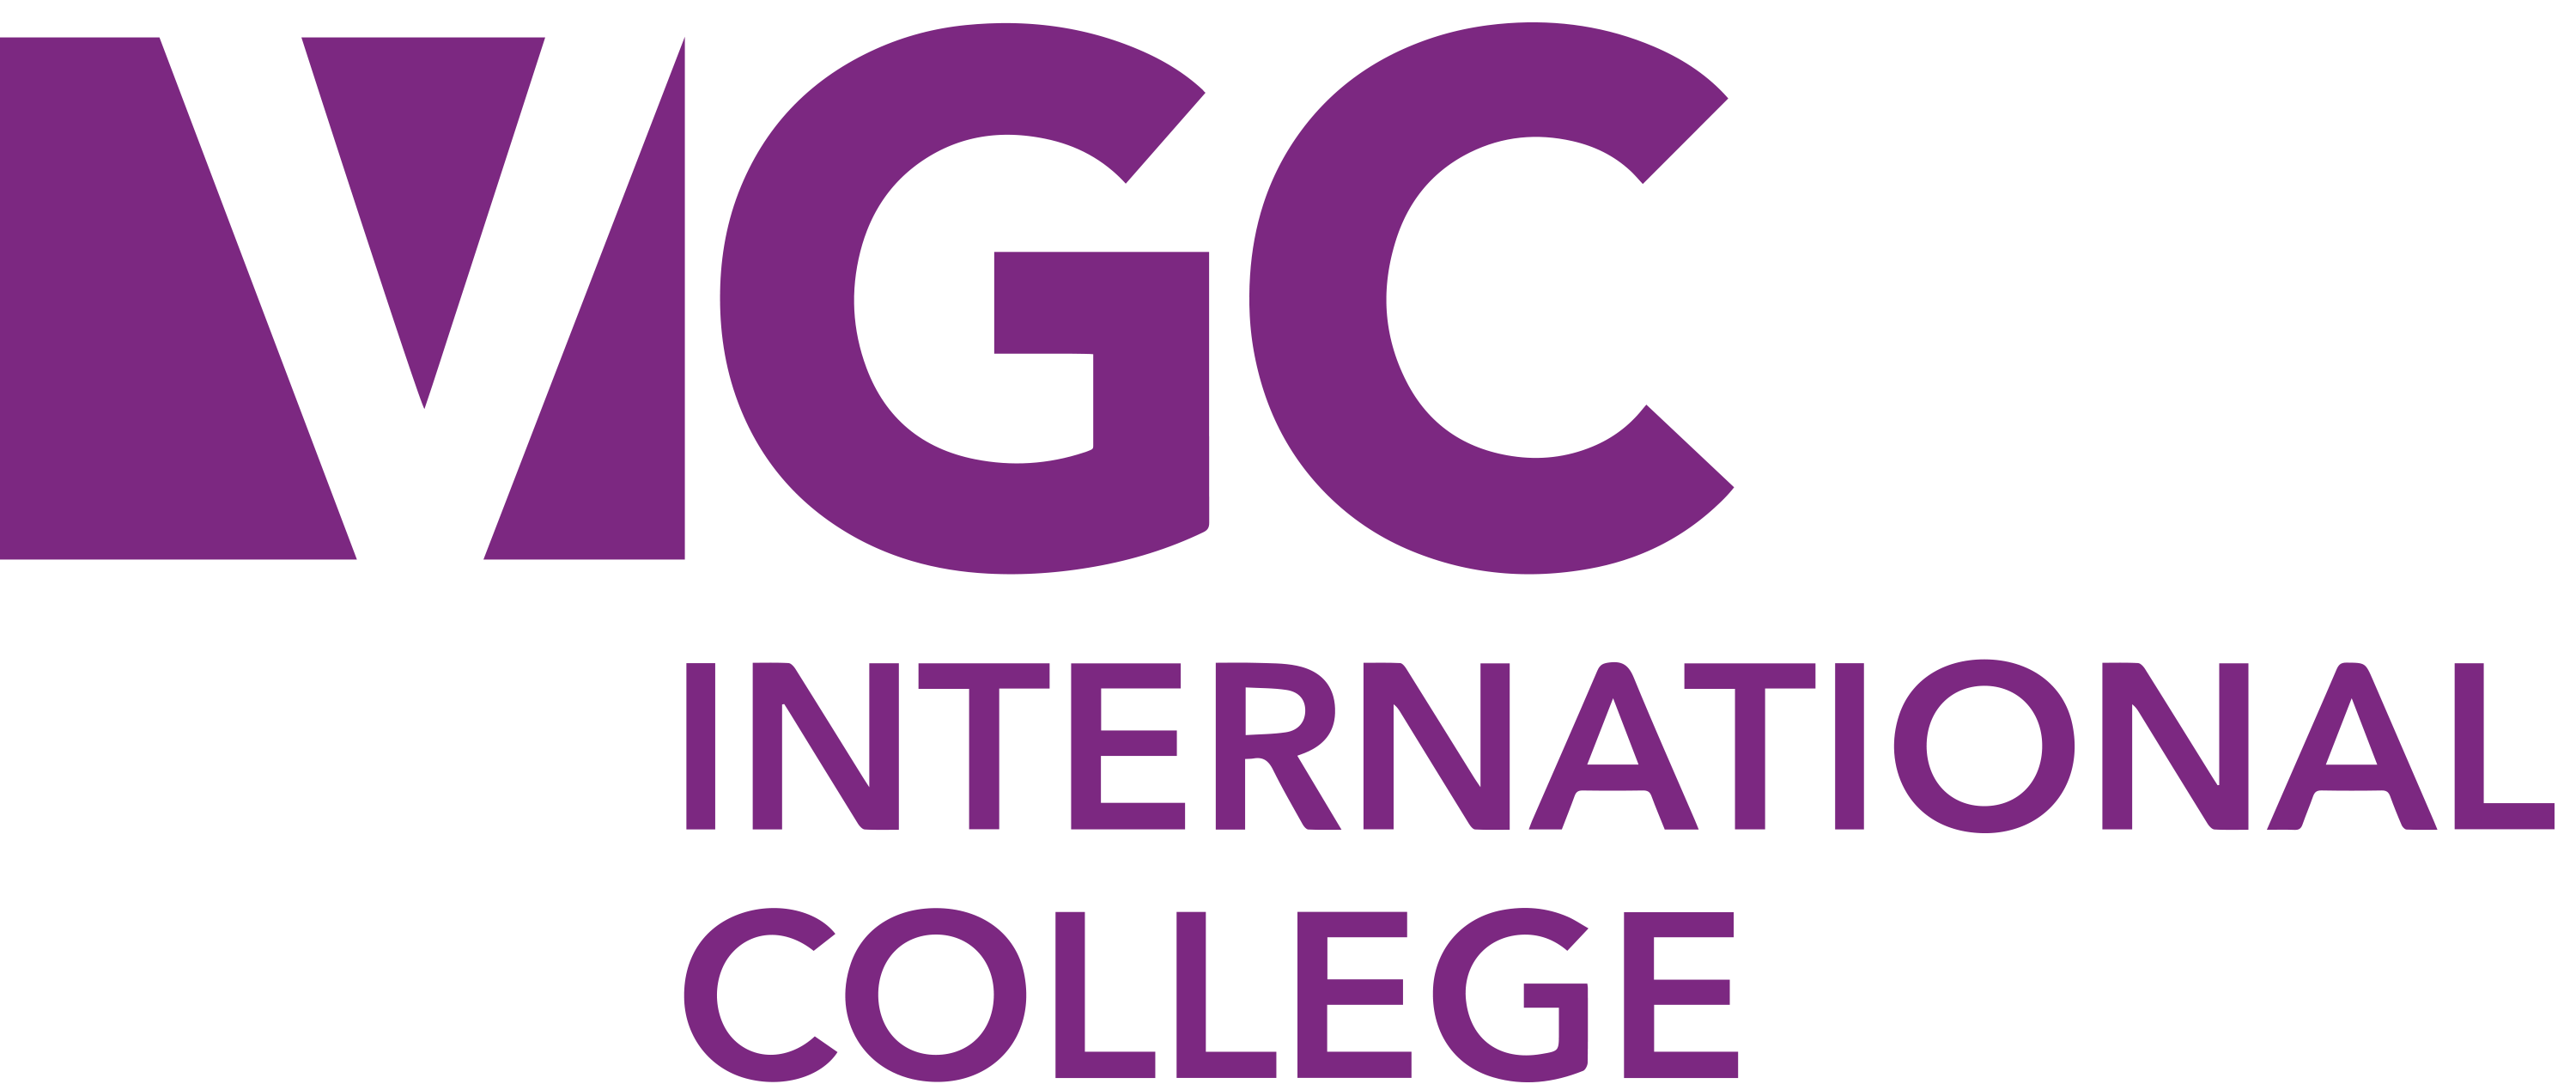 VGC International College - Logo_Purple_rgb